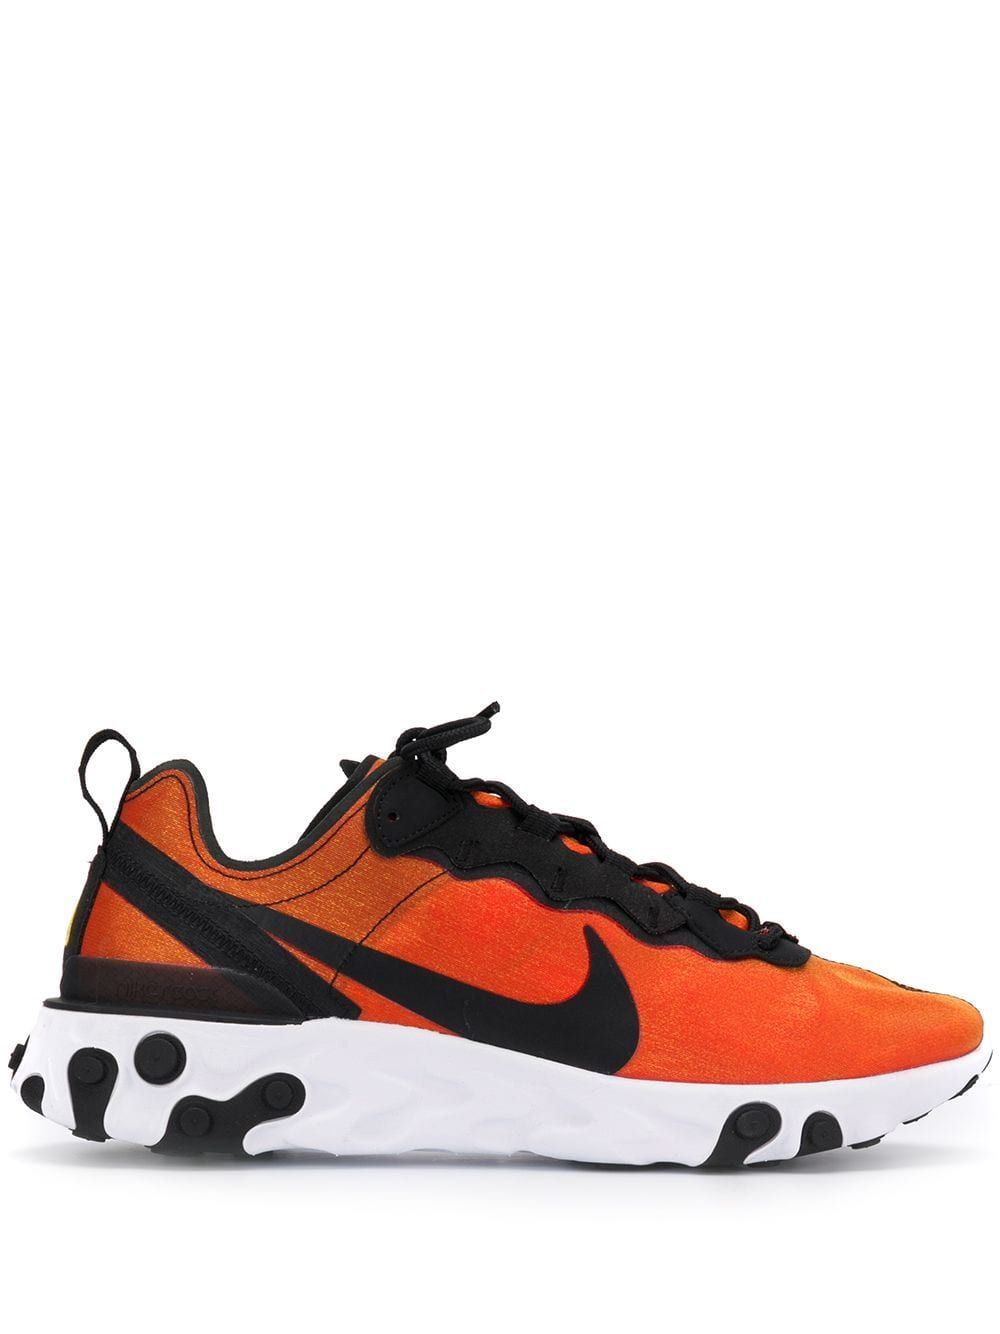 NIKE React Element 55 BQ6166-400 Navy// White// Black New Authentic Mens Shoes